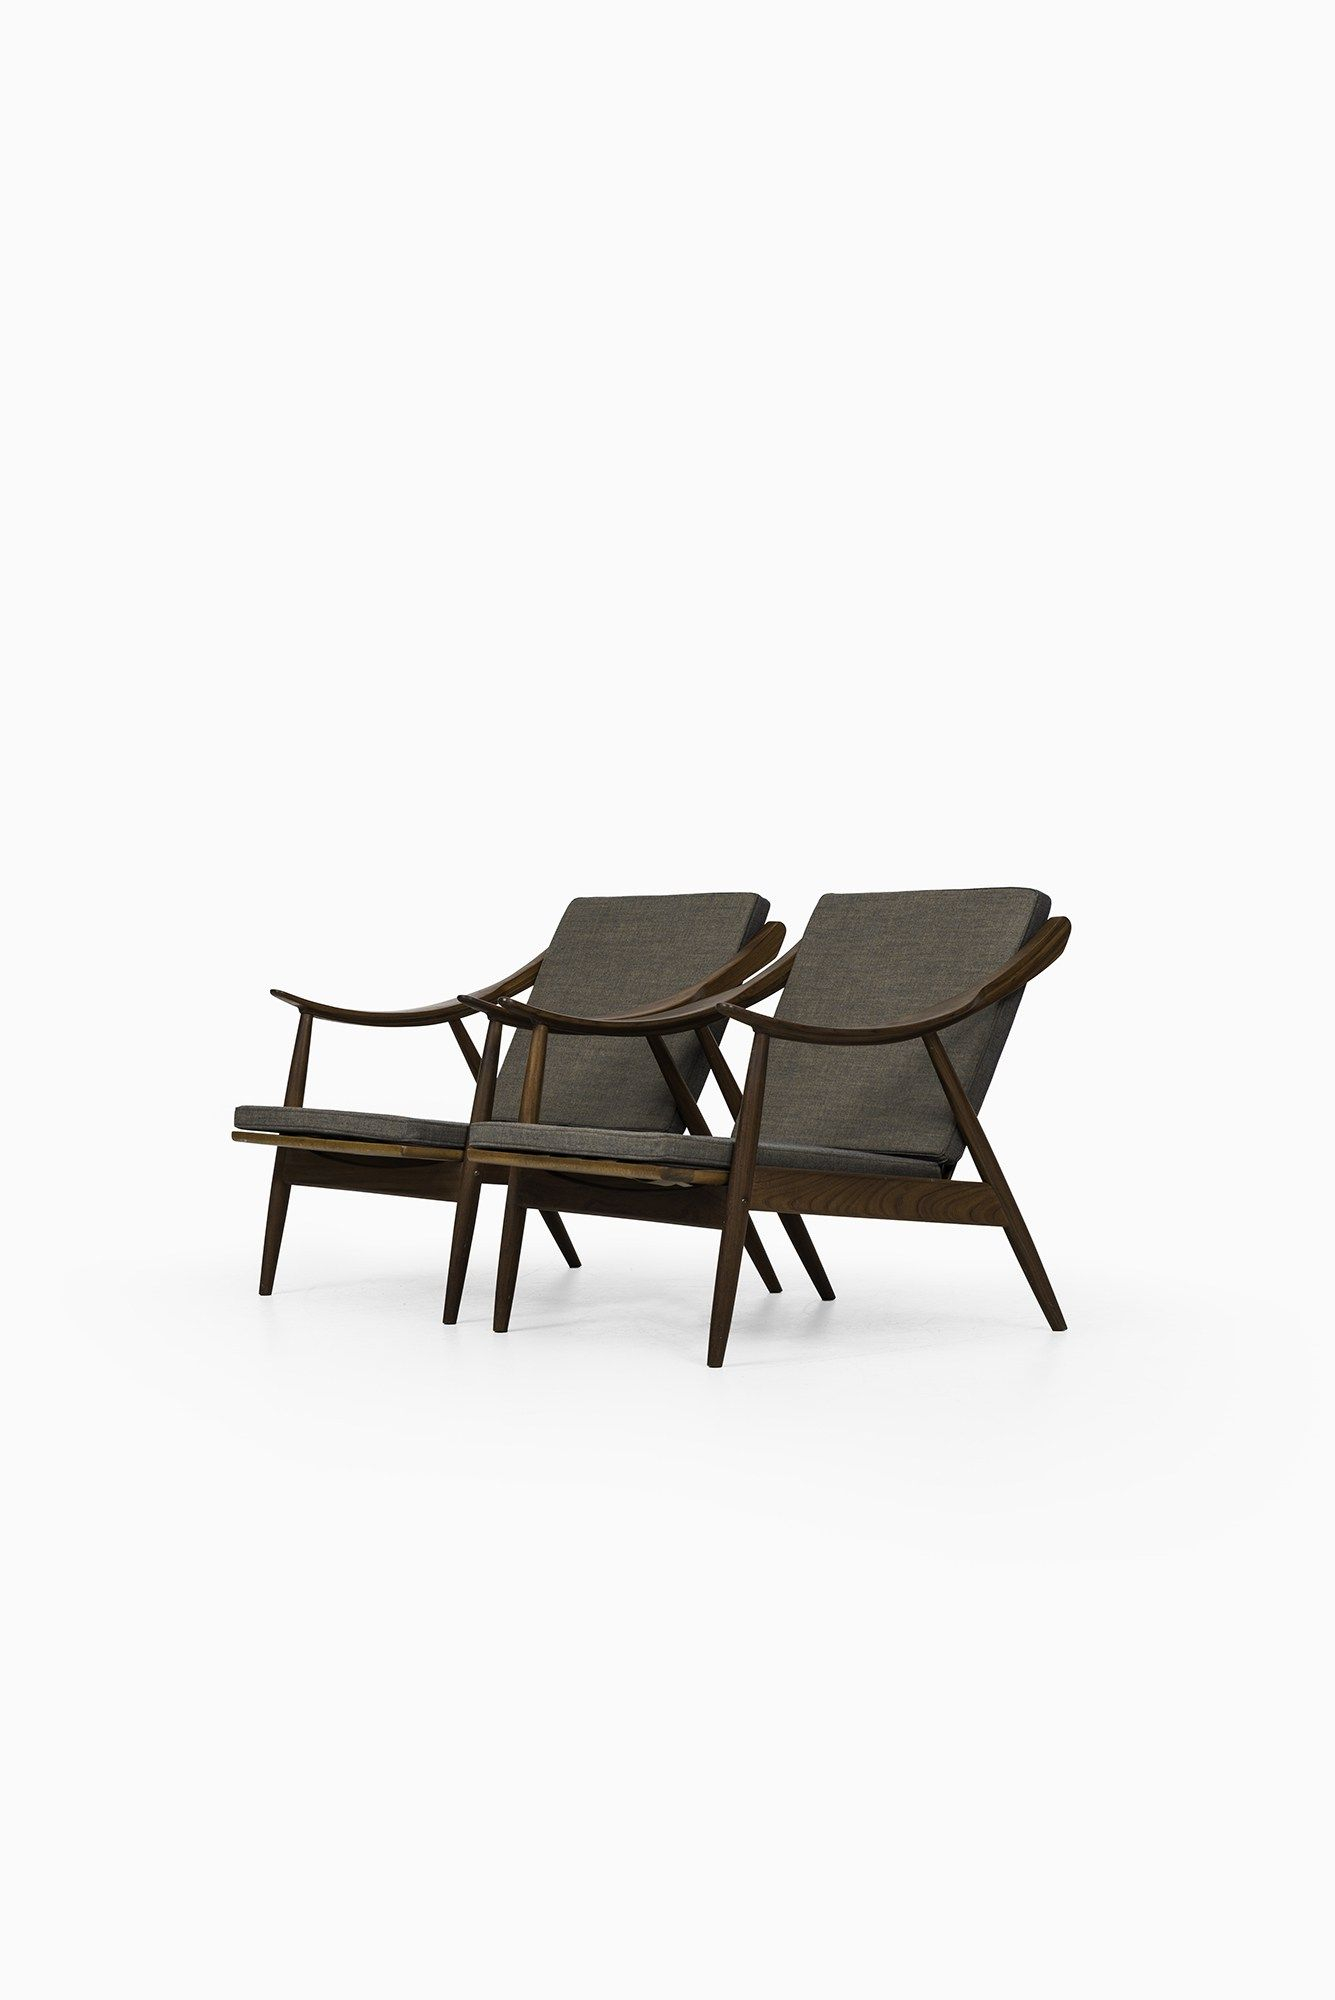 A pair of easy chairs in the manner of Peter Hvidt at Studio Schalling